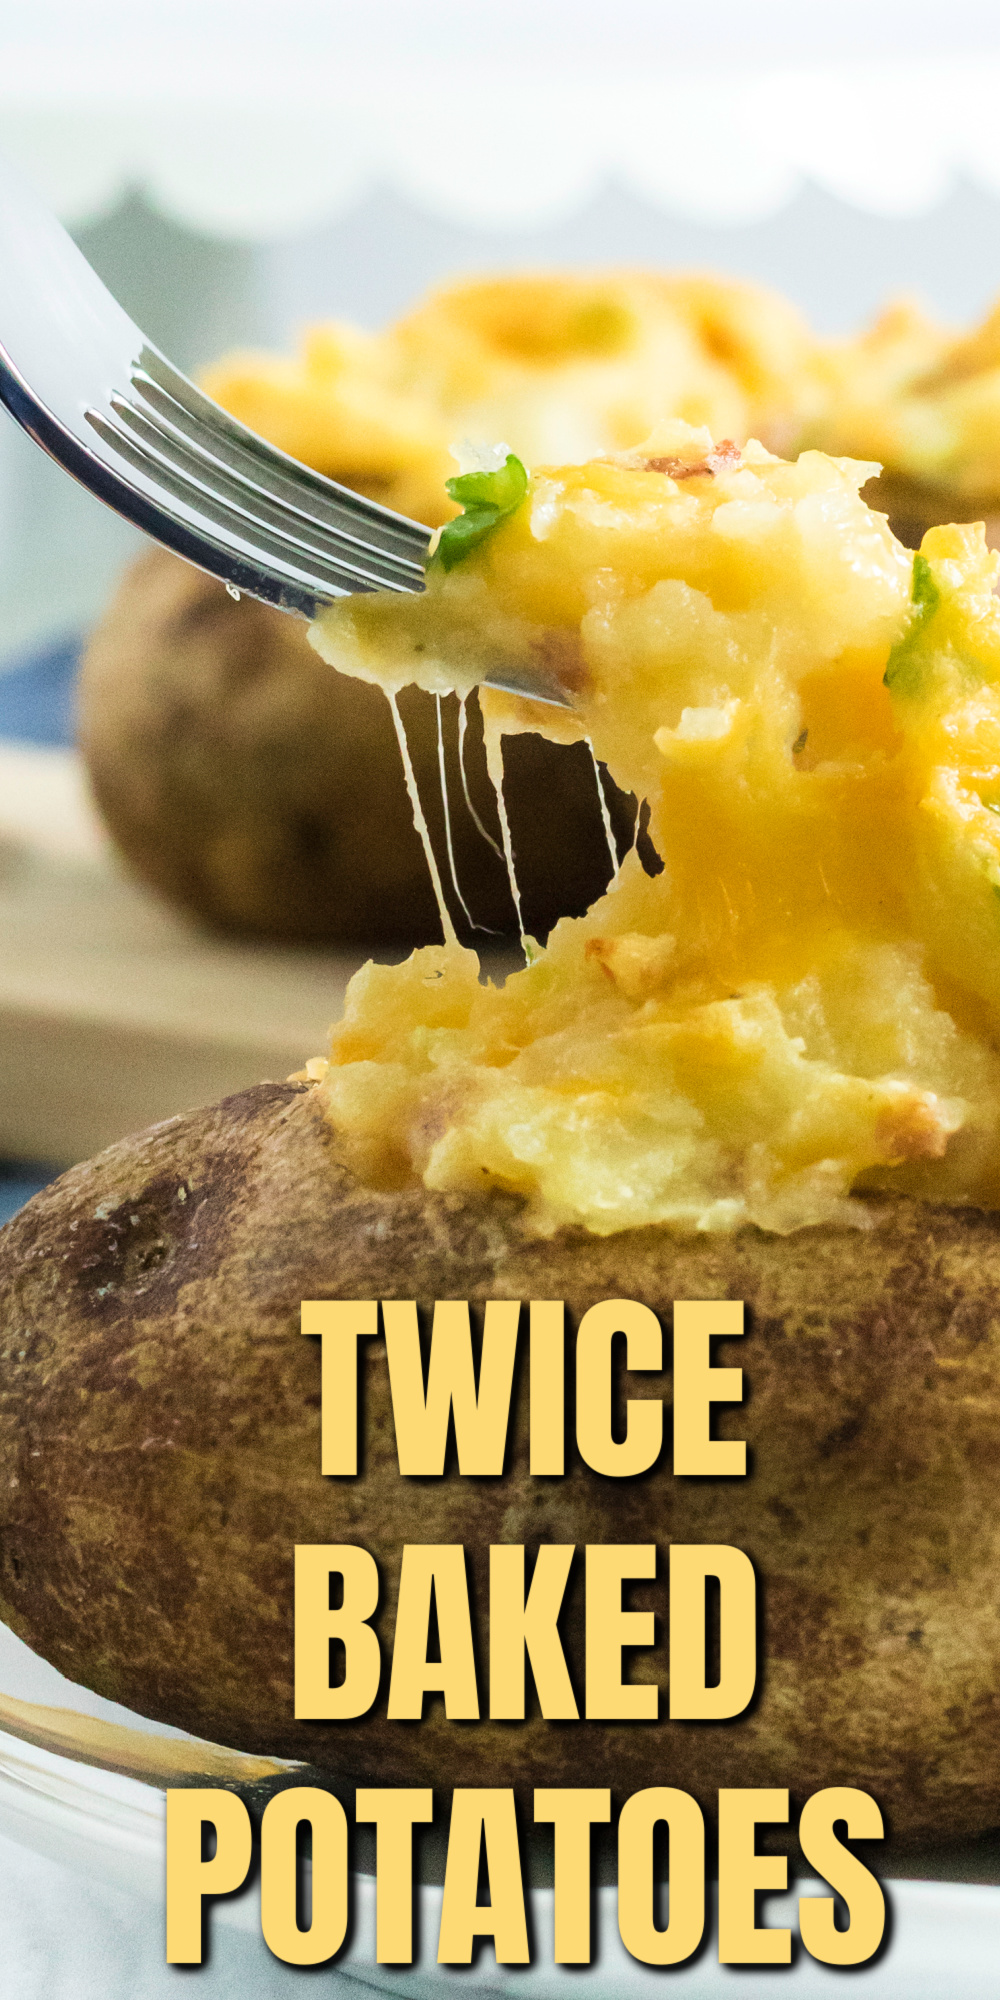 Twice Baked Potatoes are the perfect side dish or main dish and delicious comfort food. Made with russet potatoes, milk, egg, cheese, green onion, seasonings, and more. It's an easy family favorite potato recipe that never gets old.